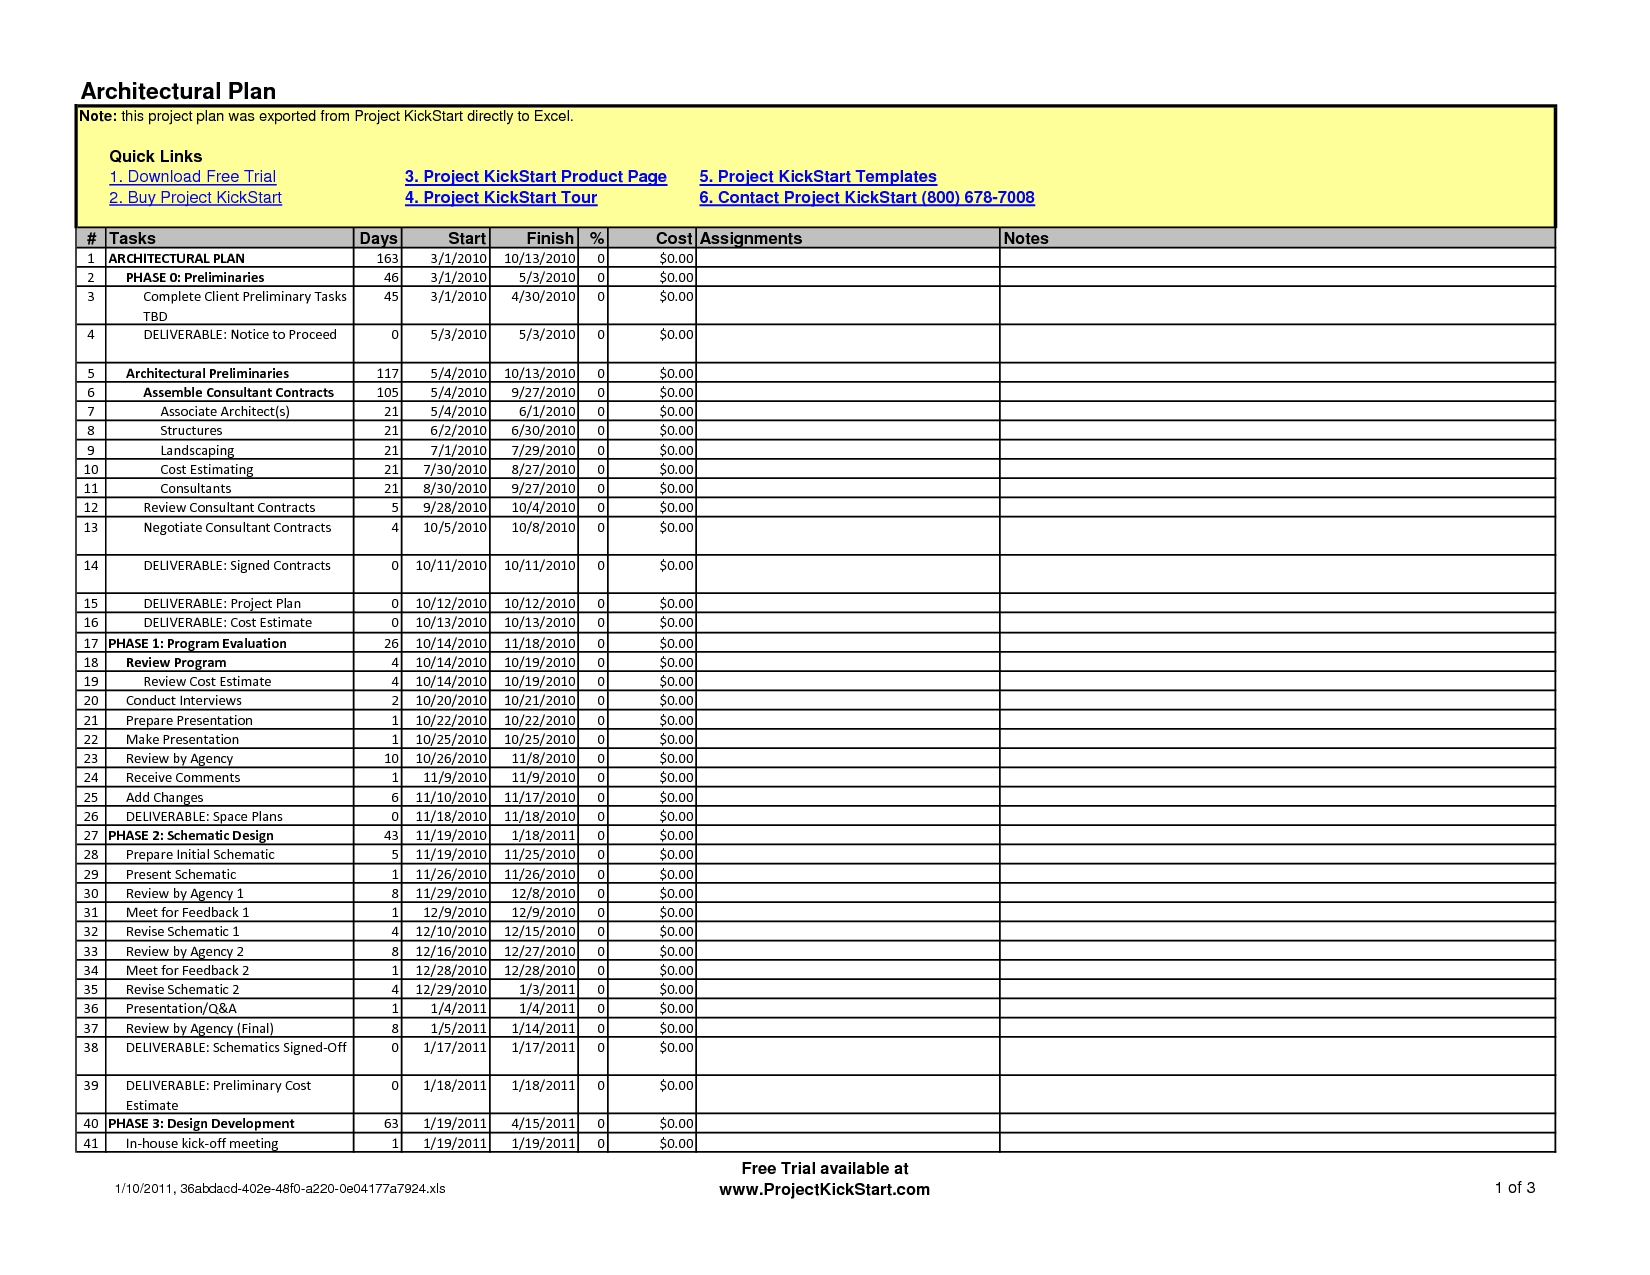 Architectural And Construction Project Plan And Schedule Template For Building Project Management Spreadsheet